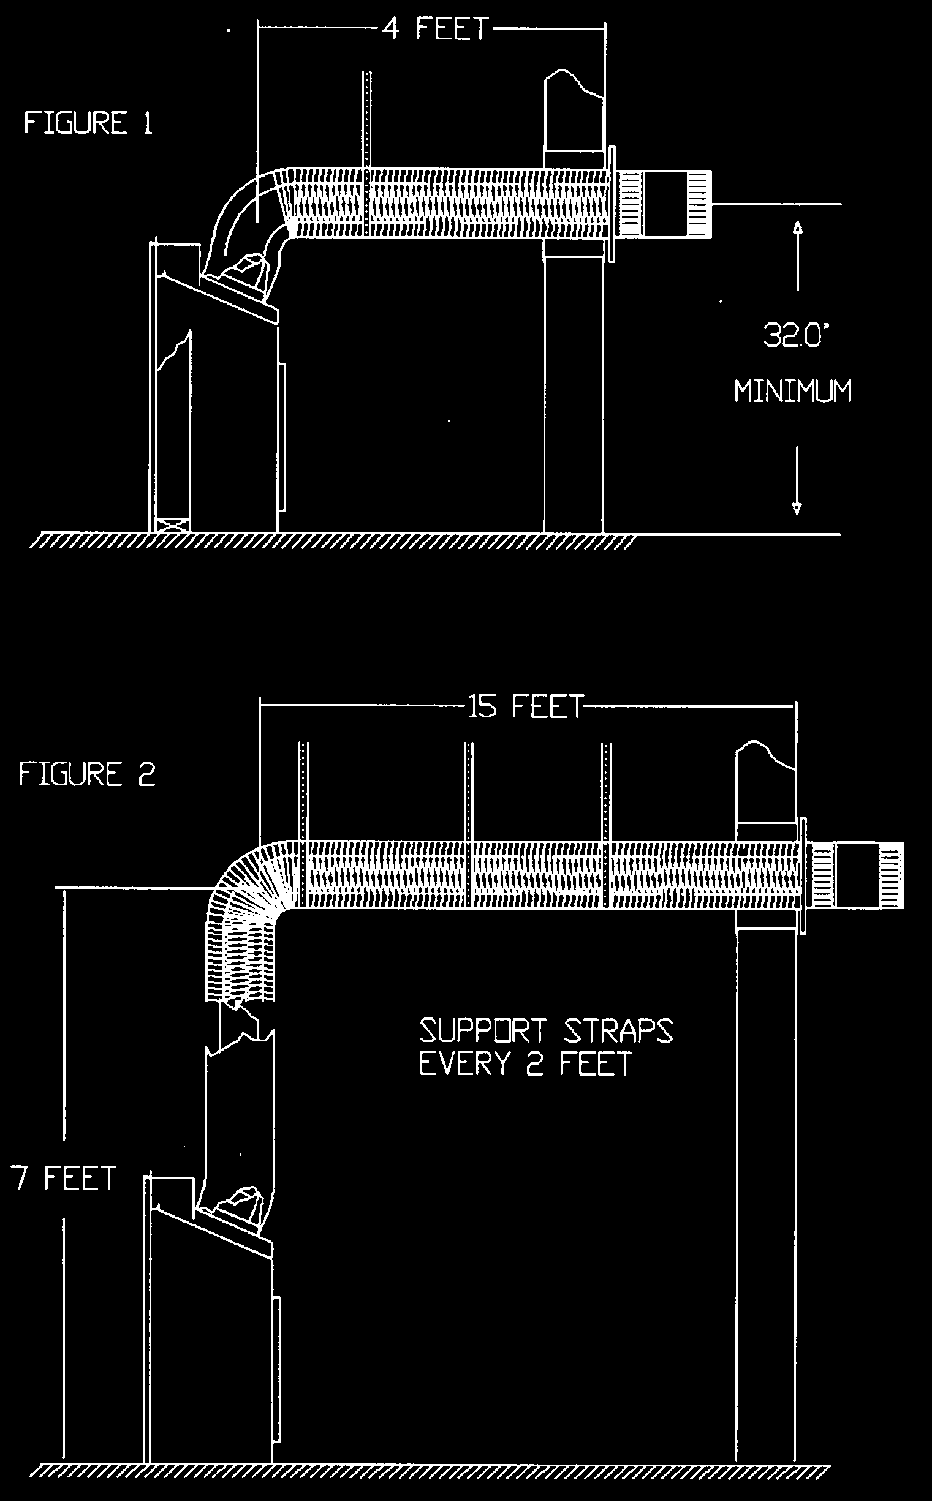 Installation Instructions Pdf Millivolt Gas Valve Wiring Diagram On Infrared Heater Venting Routes And Components Since It Is Very Important That The Vent System Maintain Its Balance